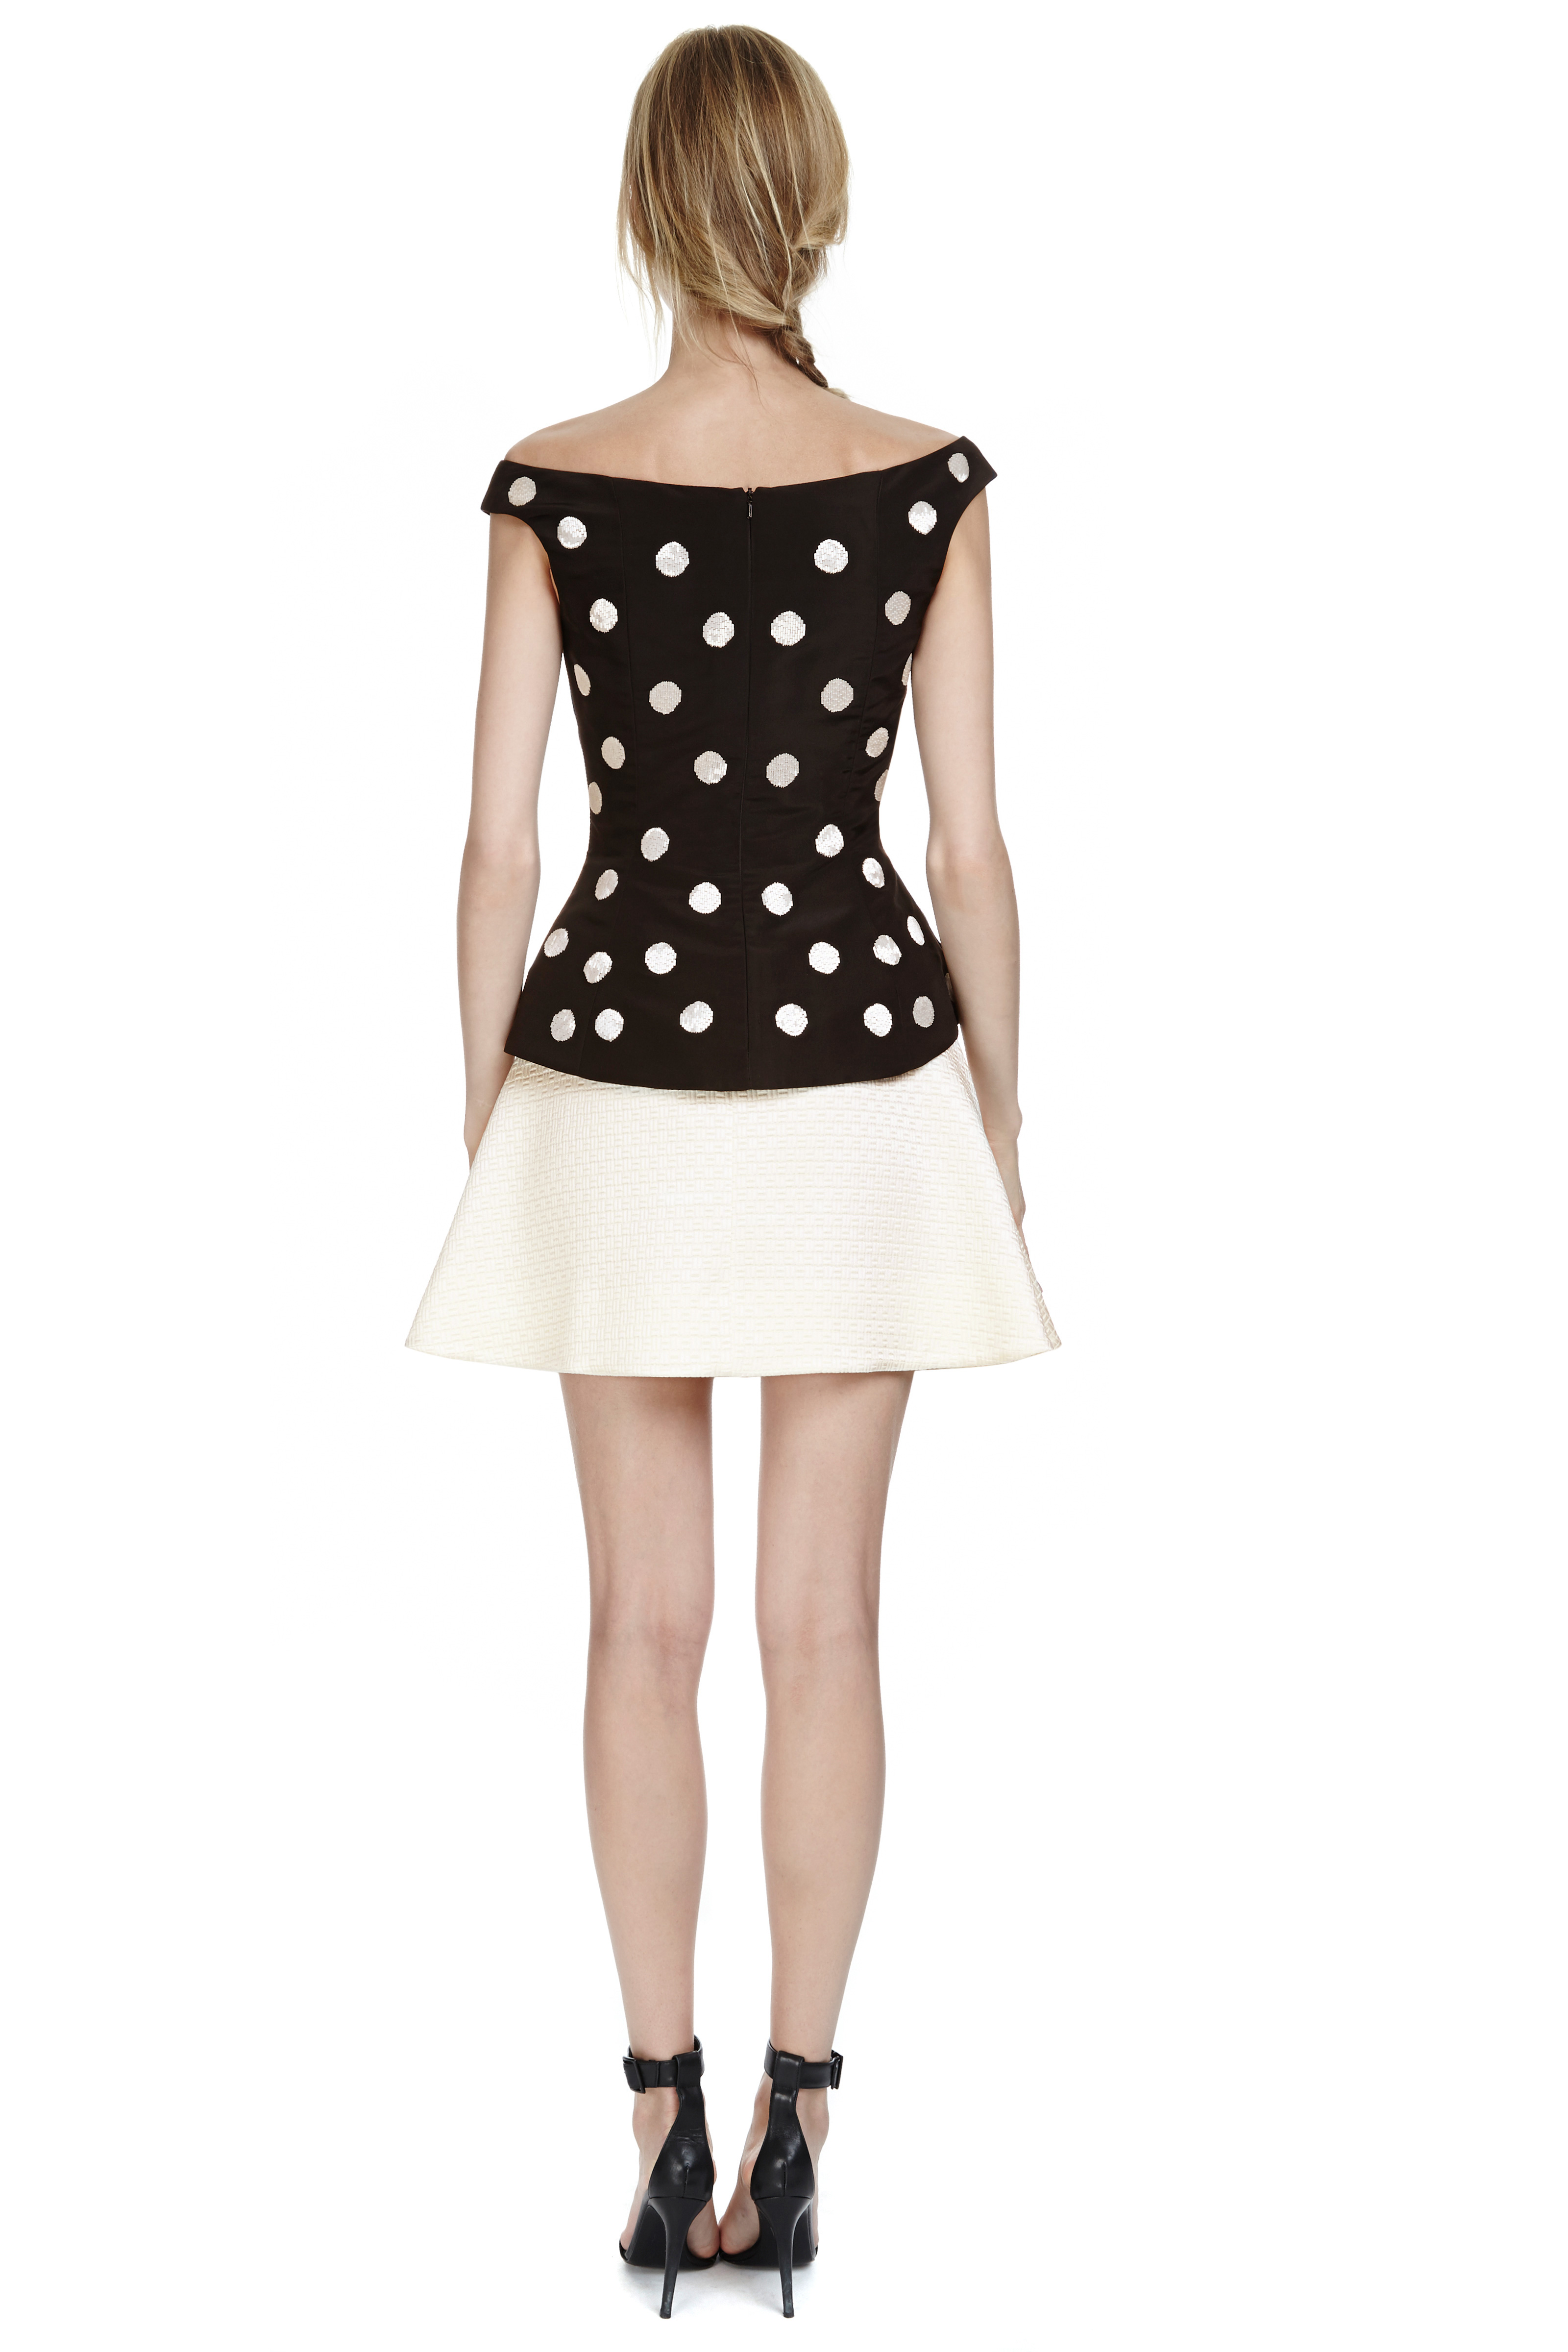 oscar de la renta offshoulder polka dot peplum top in black lyst. Black Bedroom Furniture Sets. Home Design Ideas